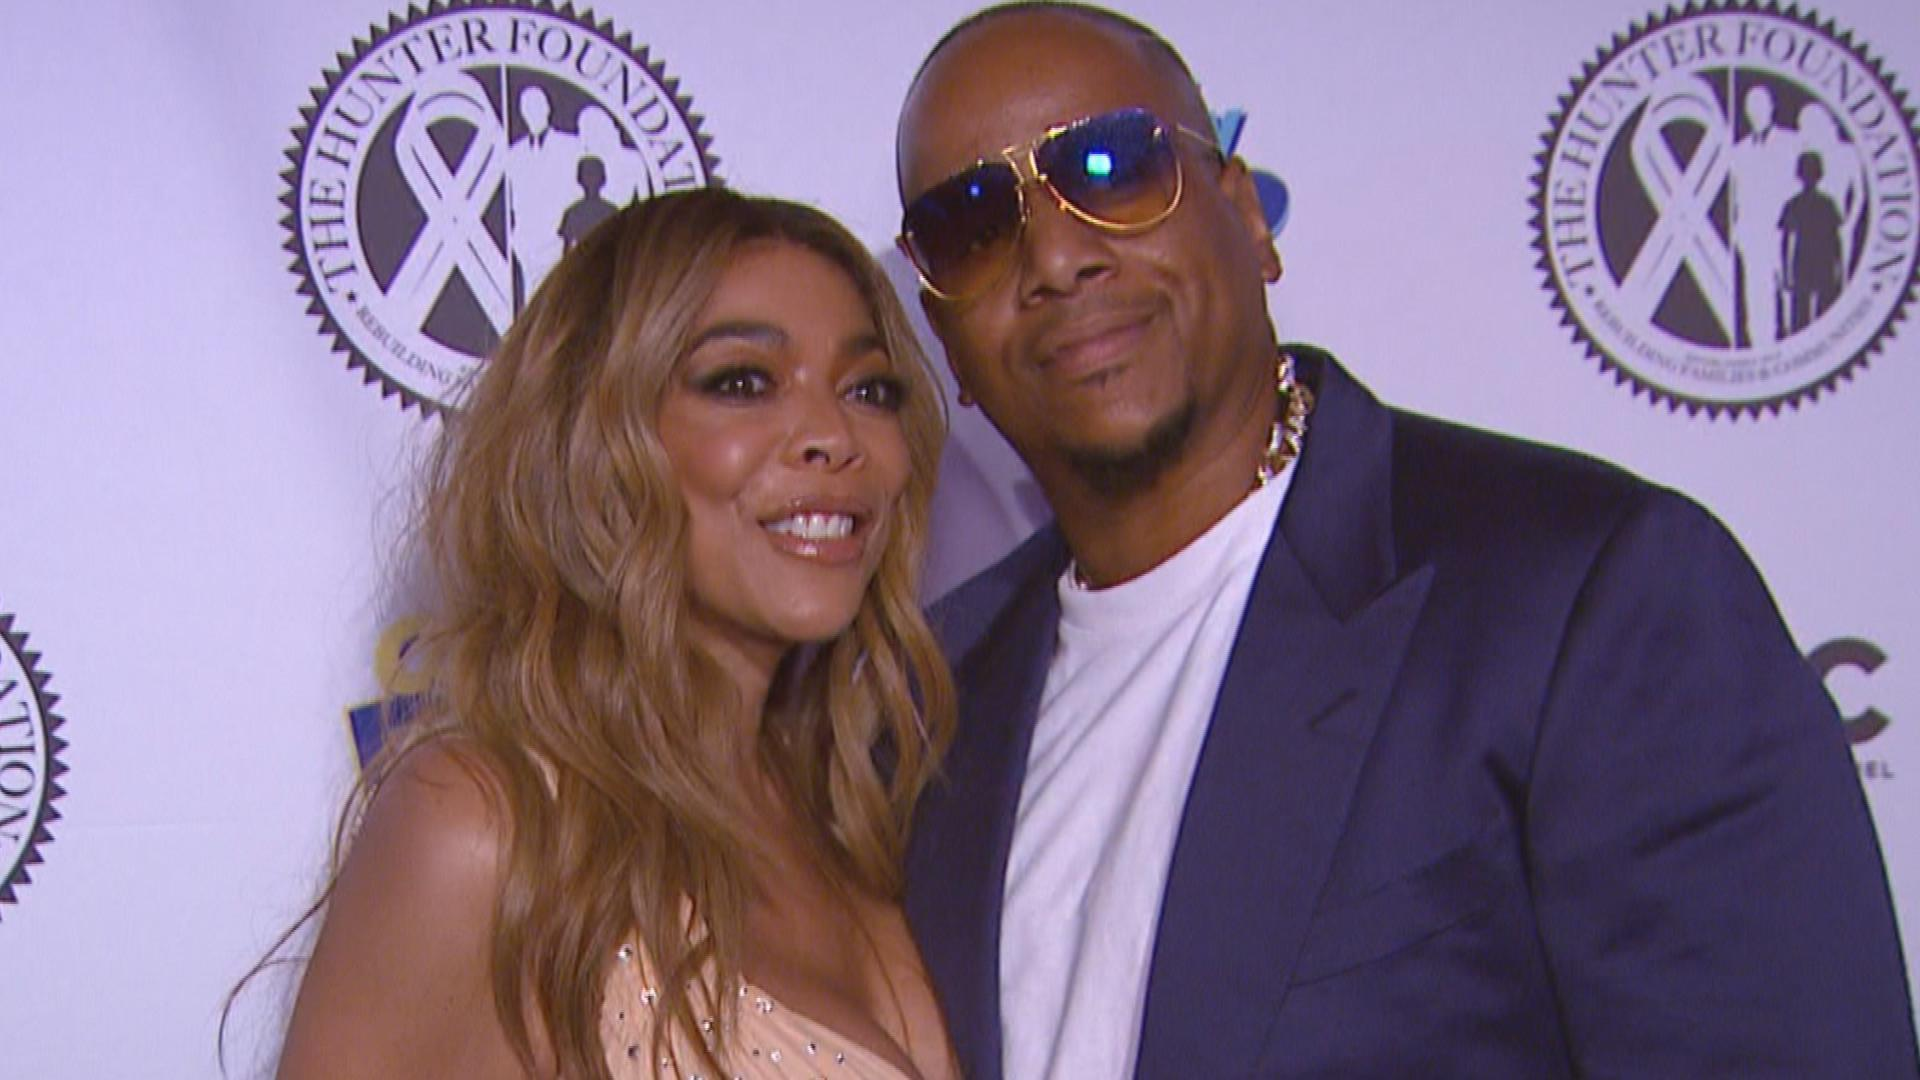 Wendy Williams Reveals She Doesn't Have a Prenup With Estranged Husband Kevin Hunter